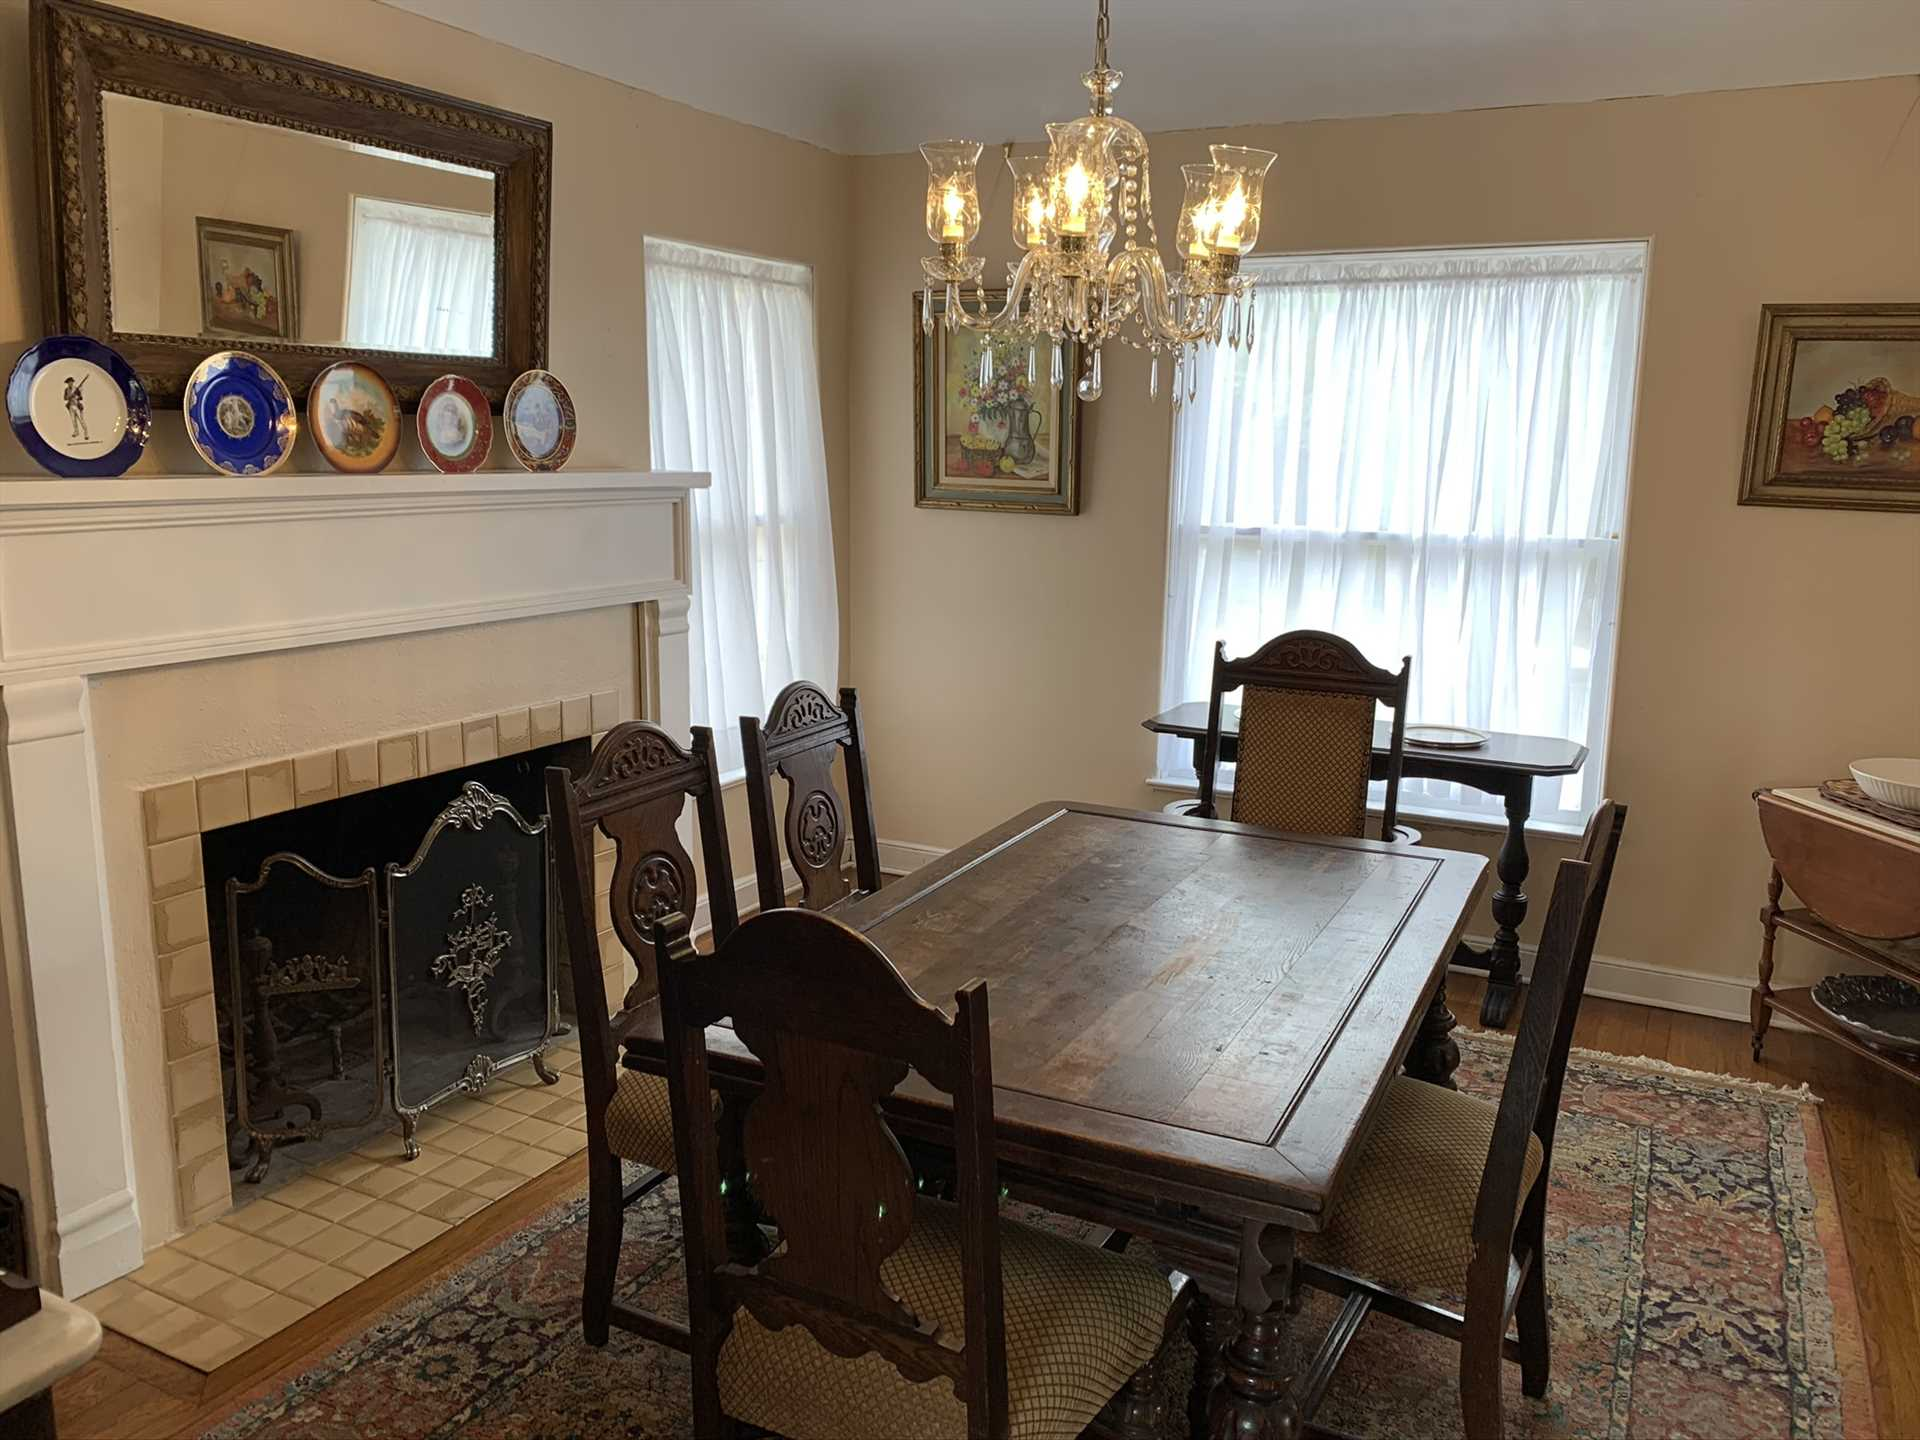 Antique woodwork highlights the dining room, which offers a historic and homey setting for your family feasts.